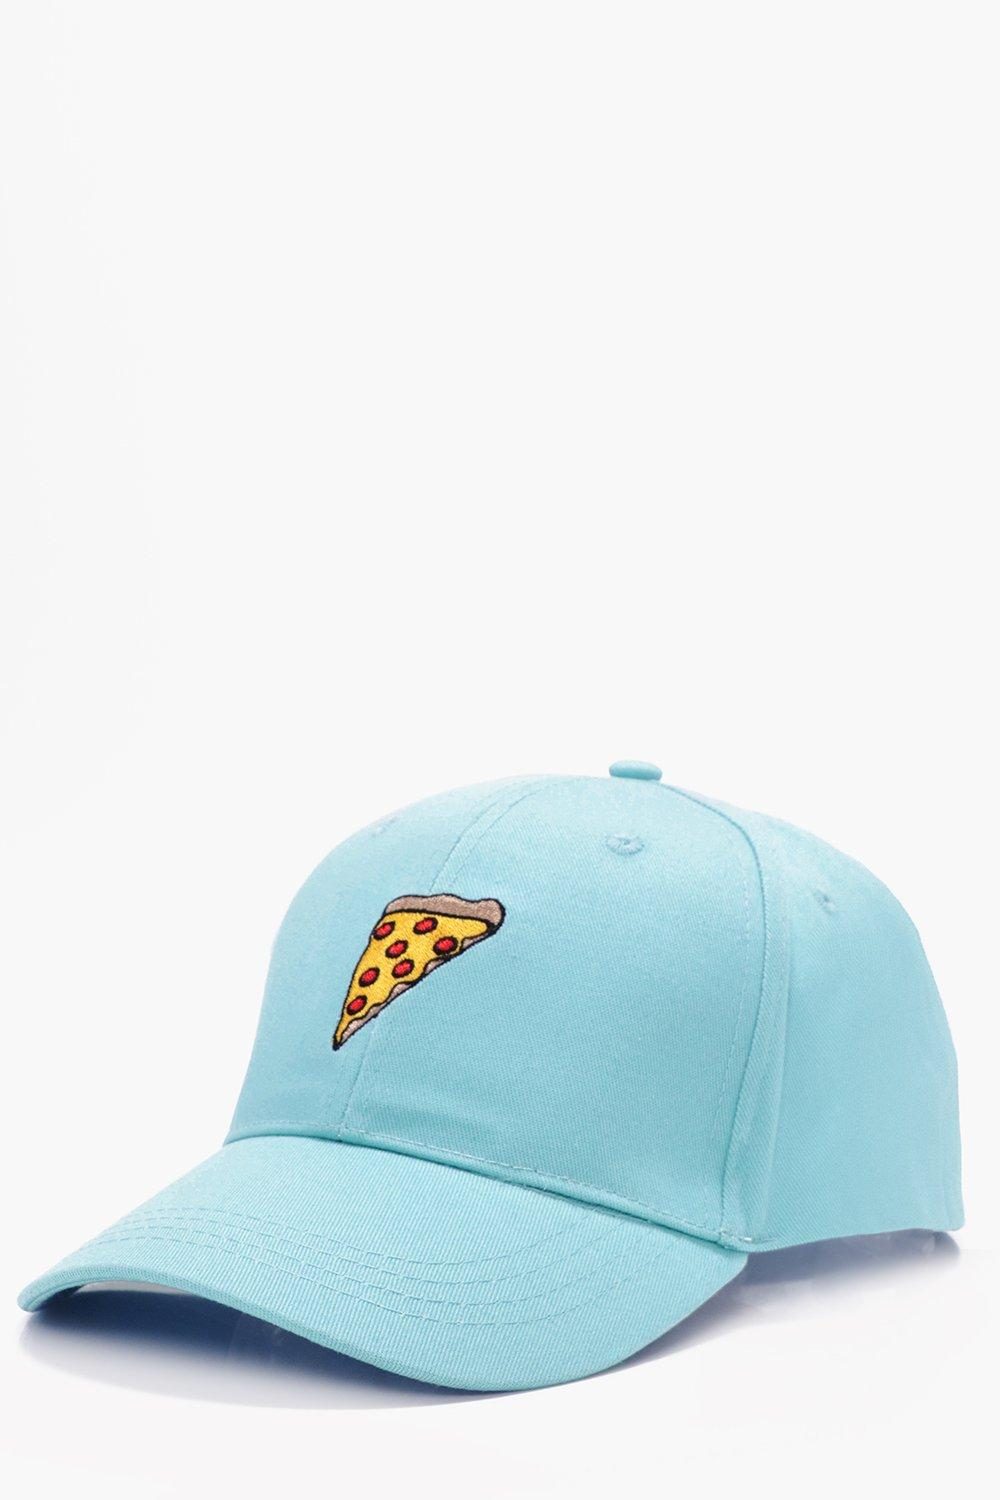 Embroidered Snapback Cap - mint - Pizza Embroidere